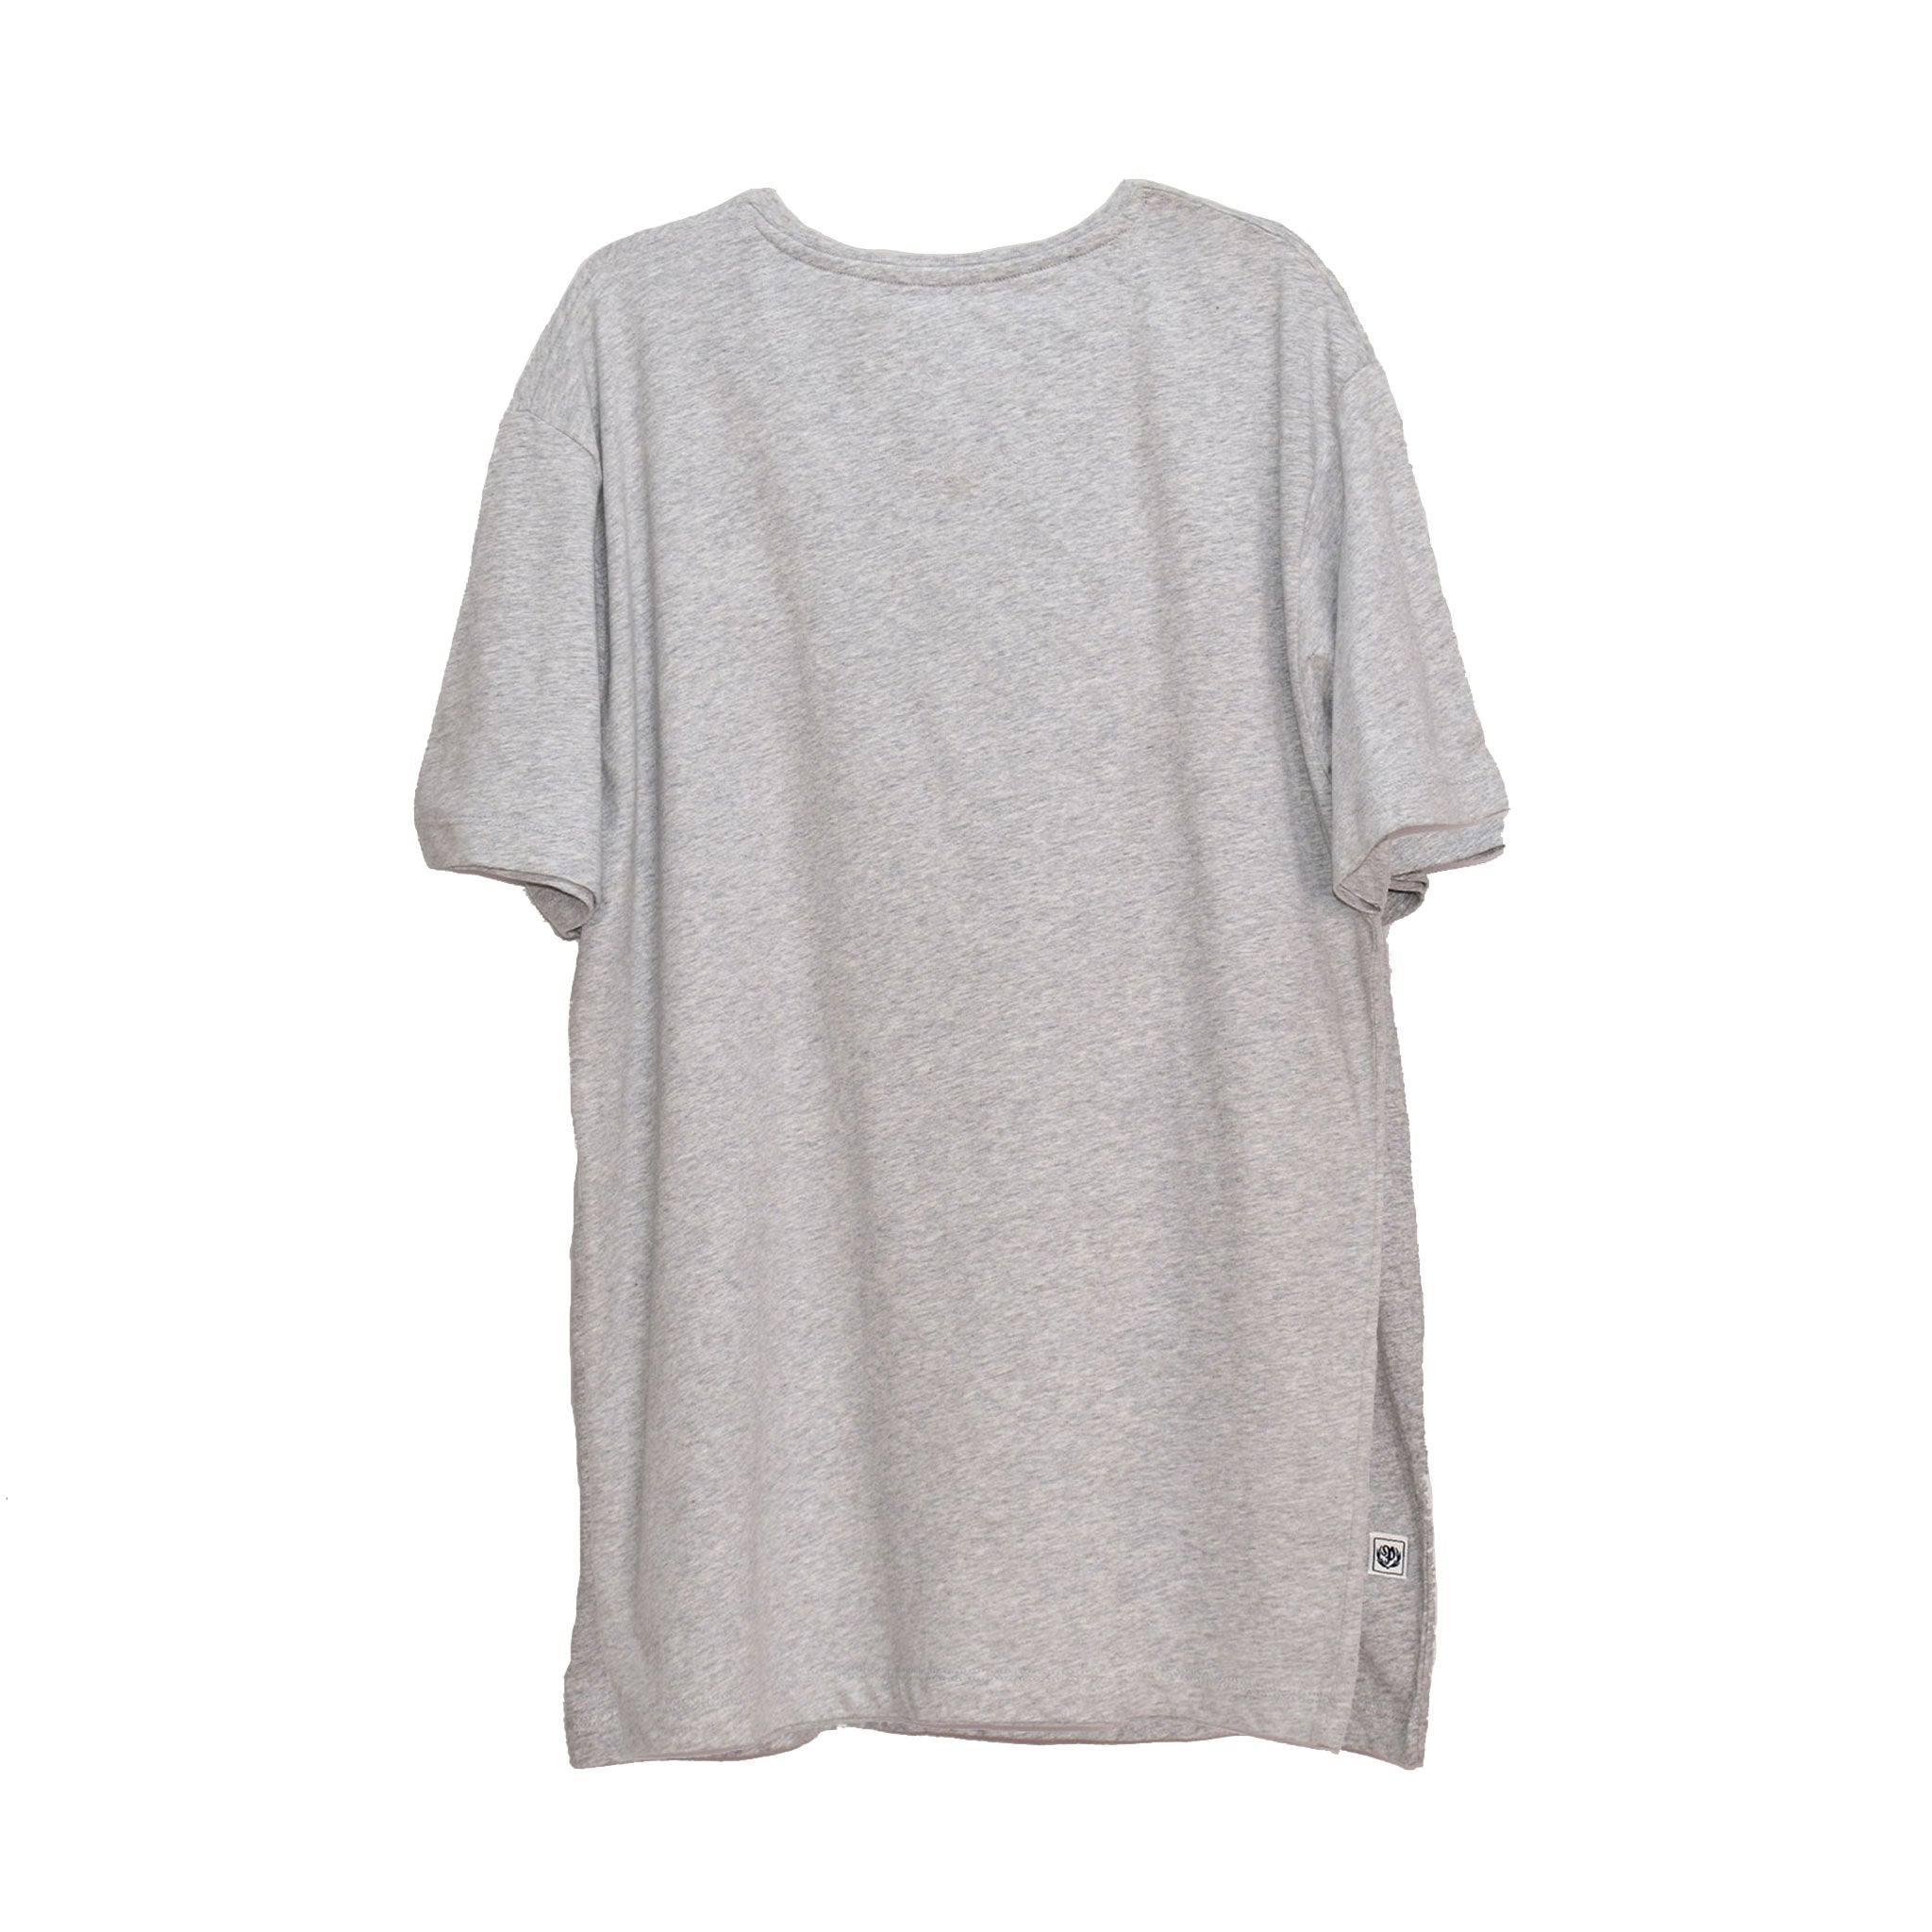 MEN'S S/S PRINTED TEE - GREY HEATHER / INTER